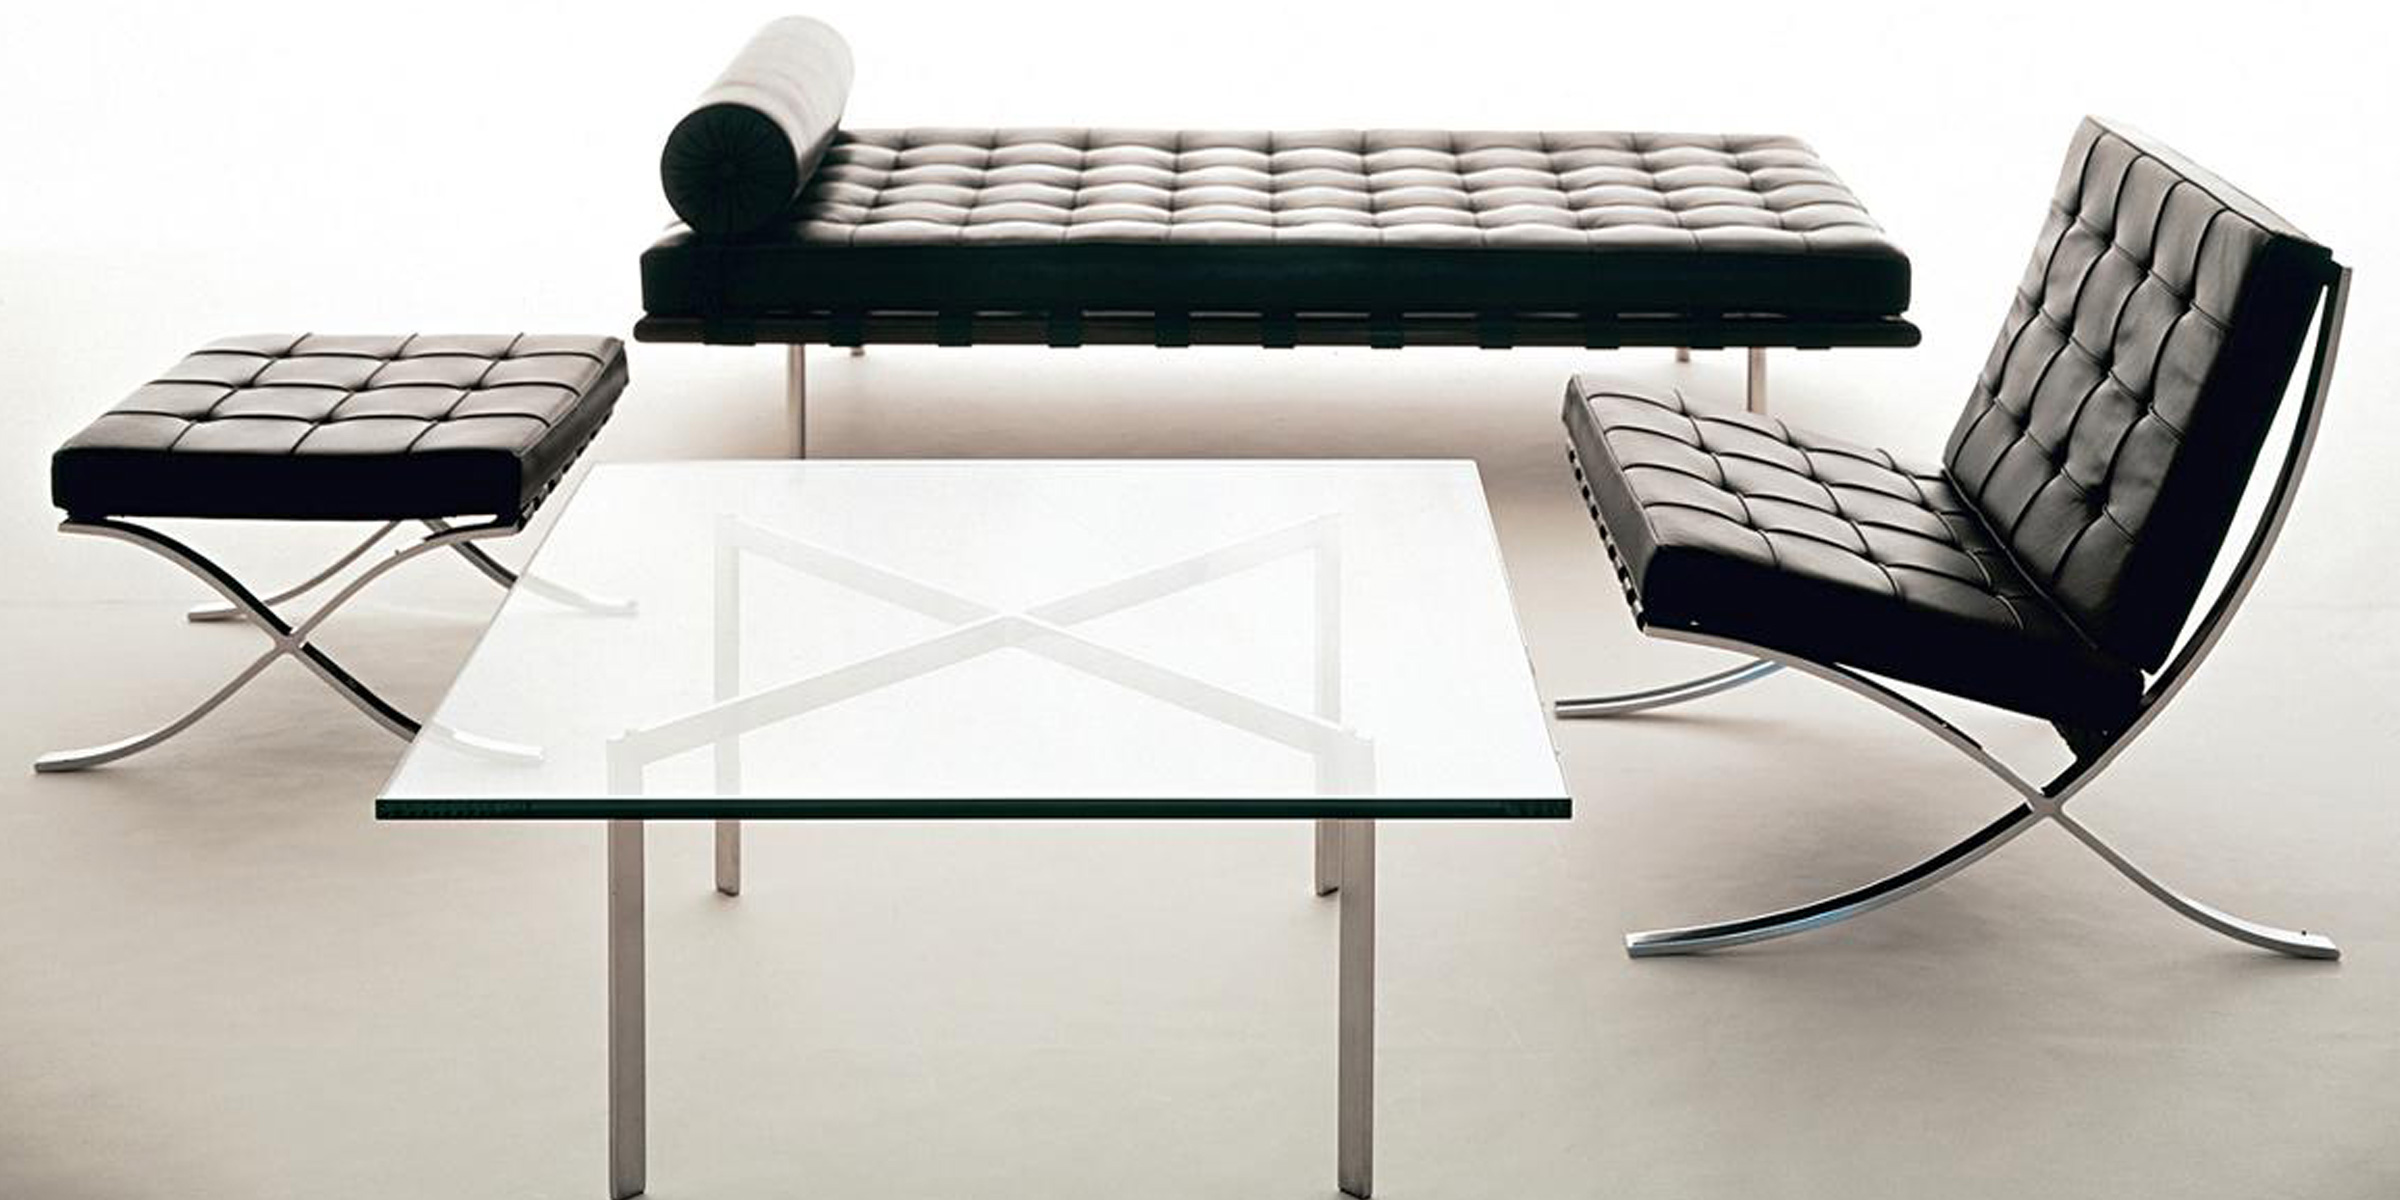 rohe van june auction design wright der ludwig barcelona couch auctions daybed mies of